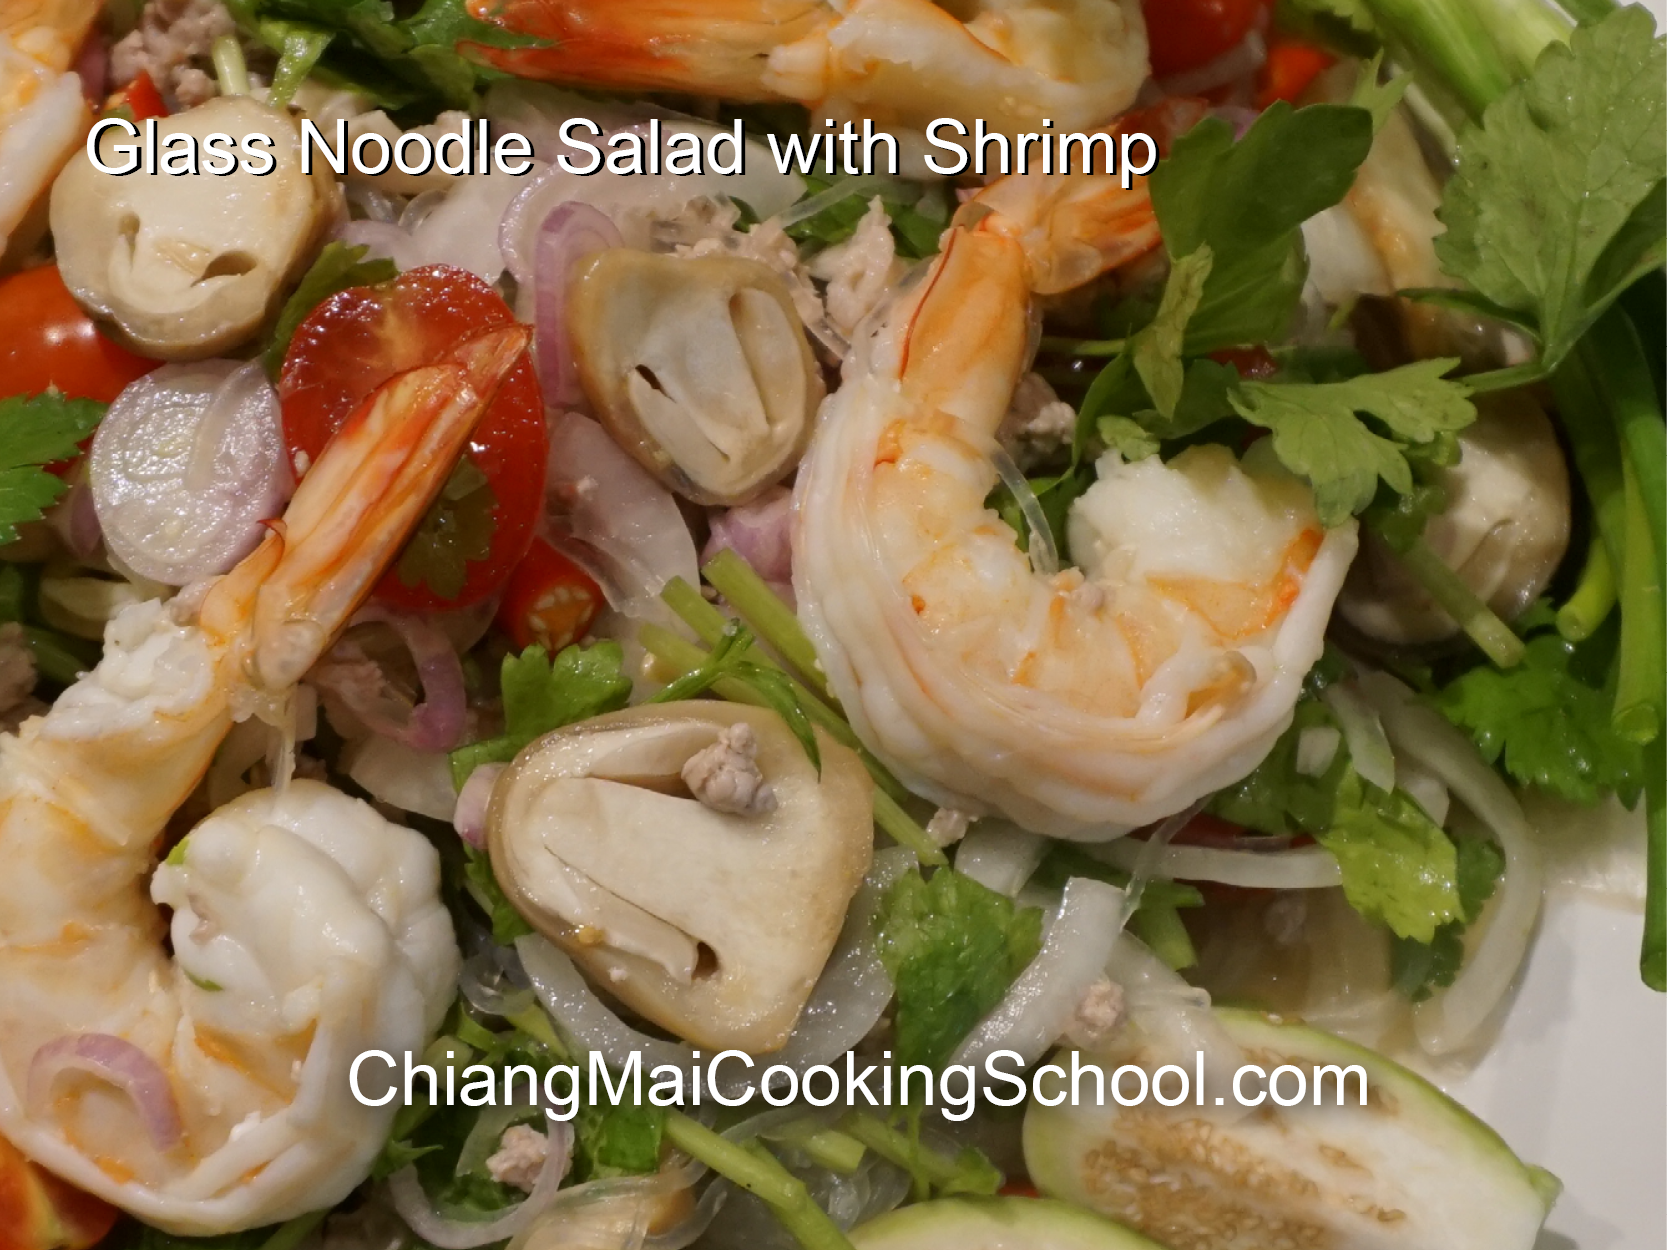 Delicious Glass Noodle Salad from Chiang Mai Cooking School